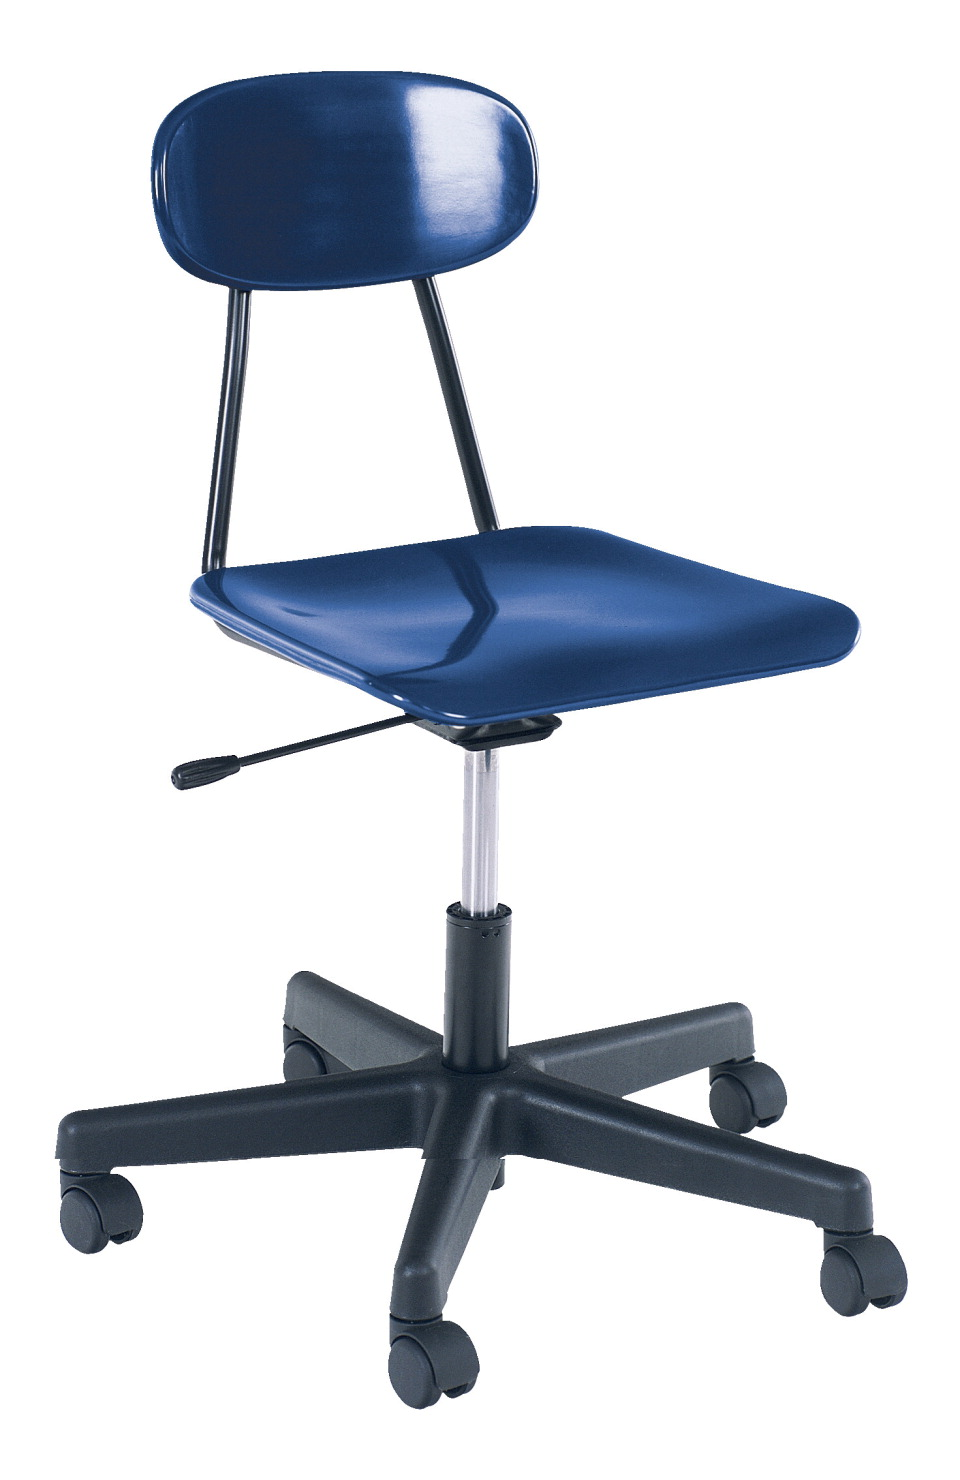 Royal Seating 4100 Pneumatic Lift Chair with Casters, 17-3/4 to 22-1/4 Inch Seat , Various Options